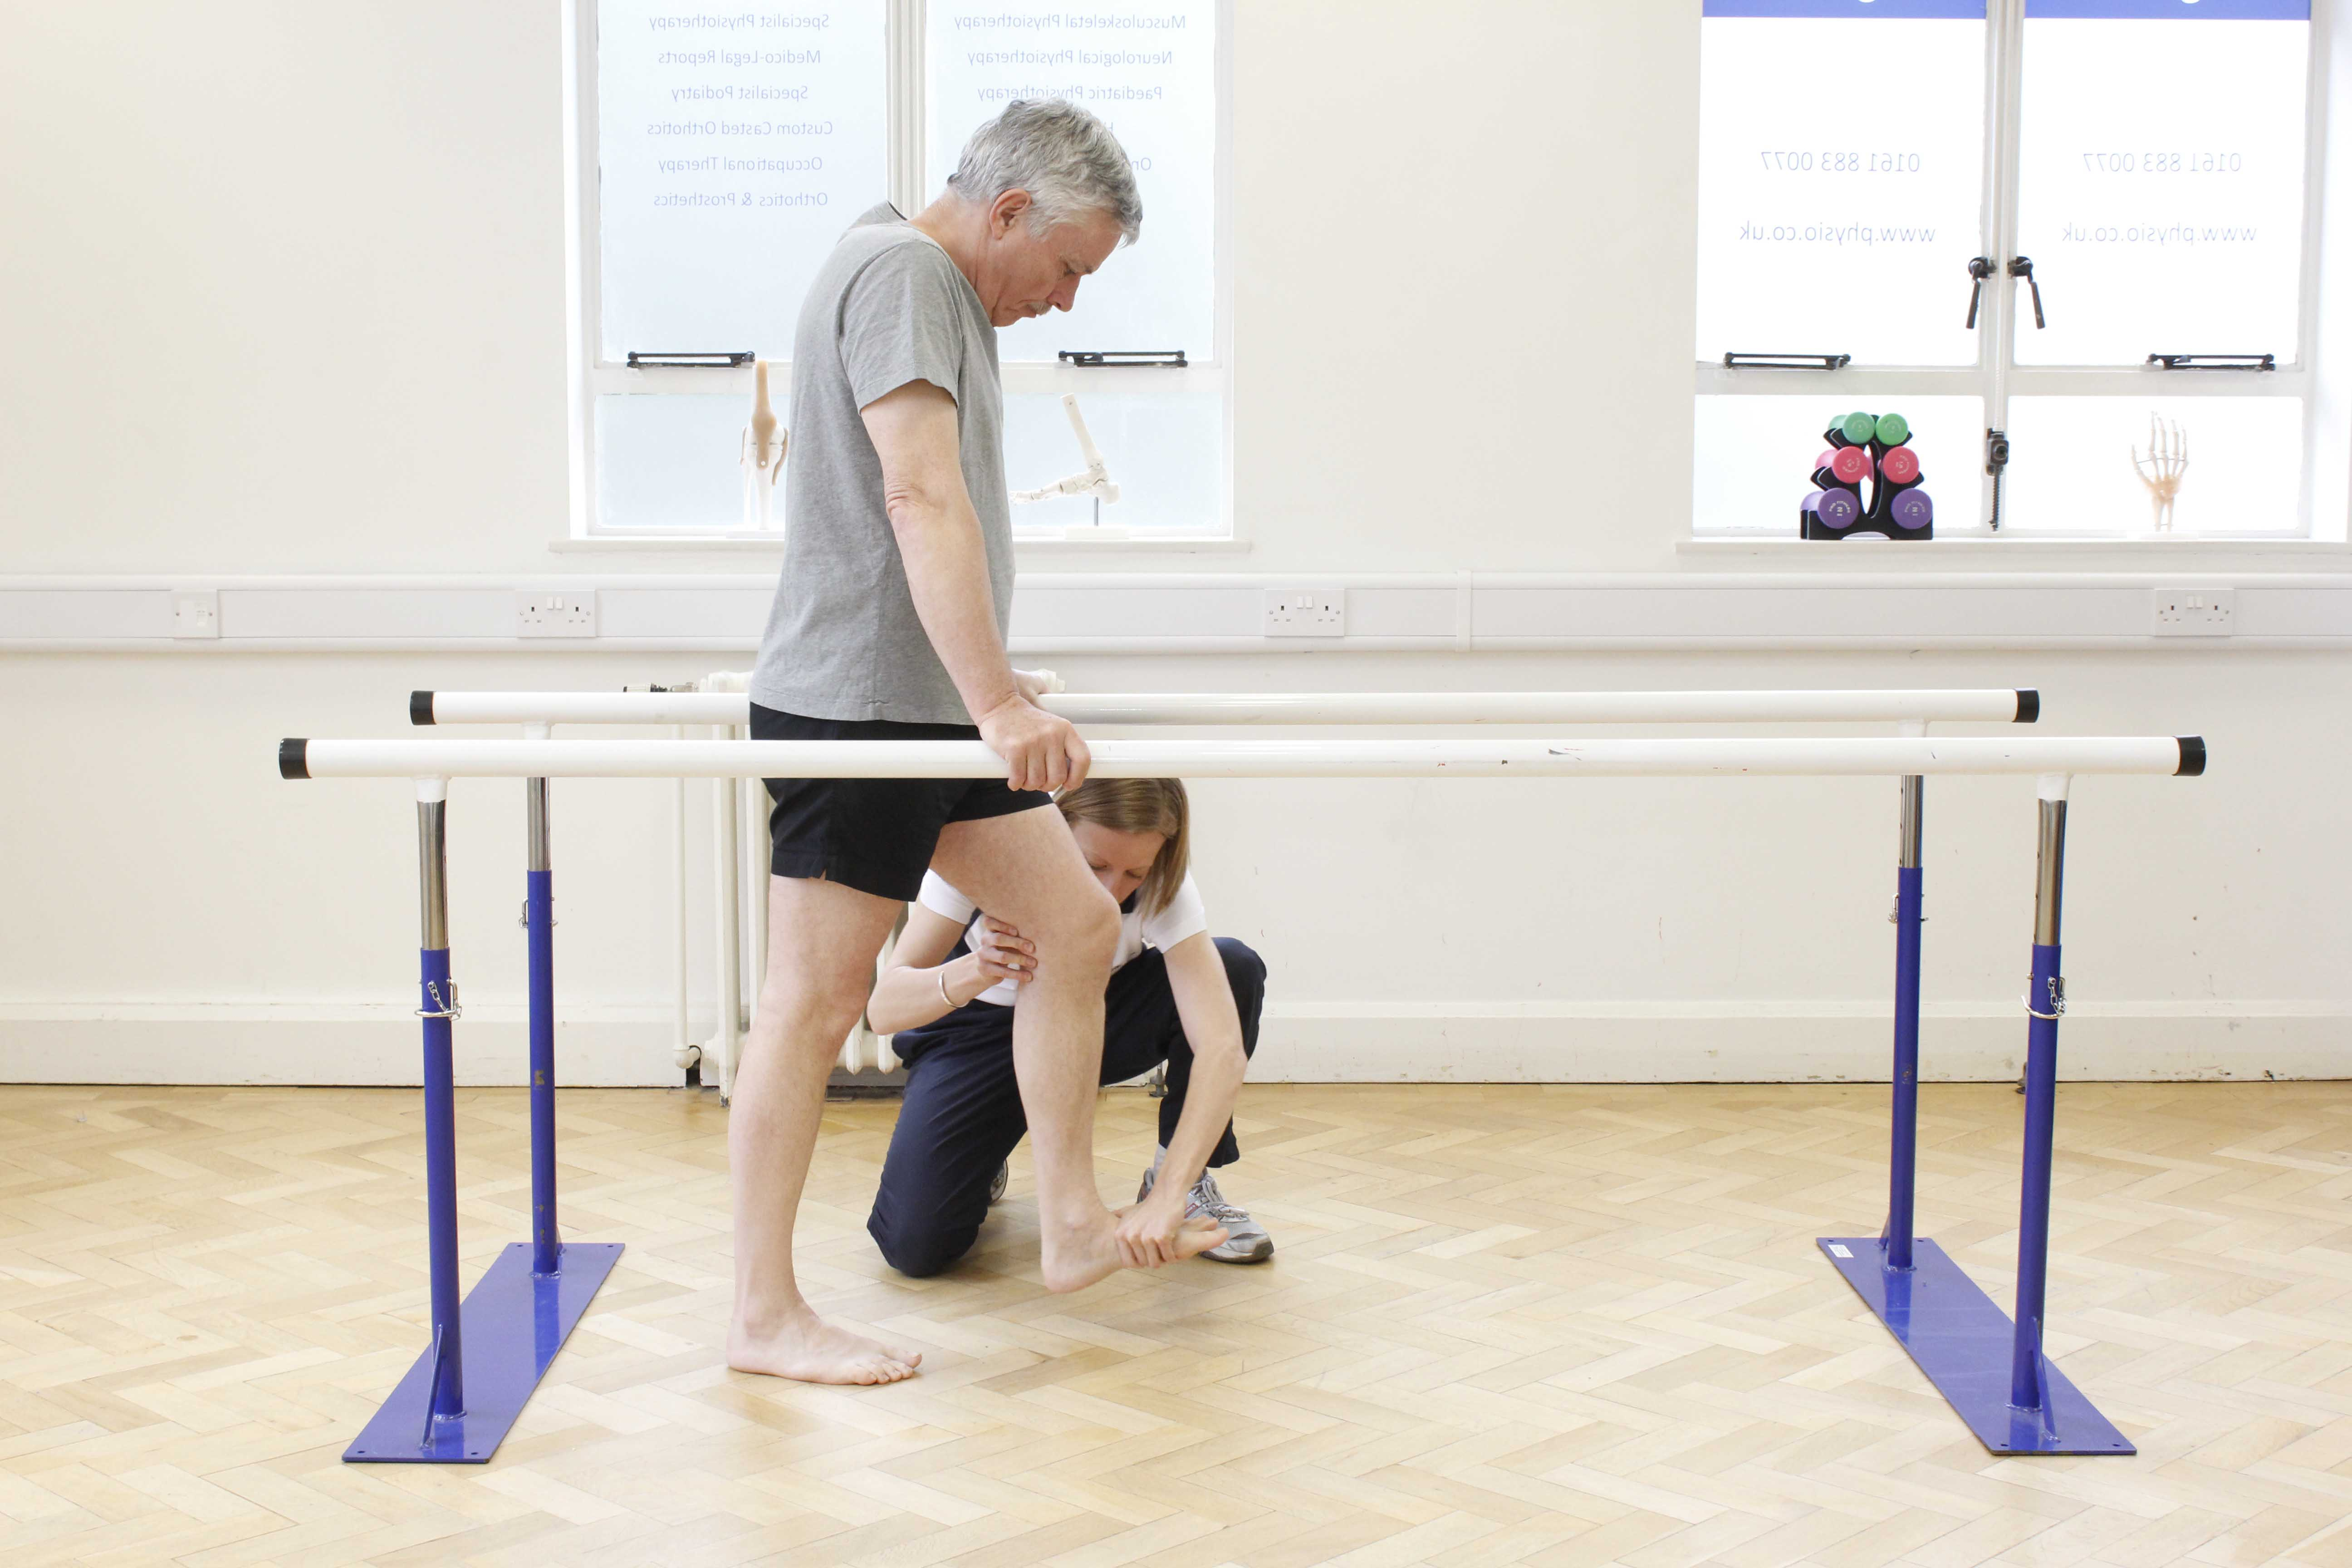 Neurological physiotherapist assisting mobilisation exercises between the parallel bars